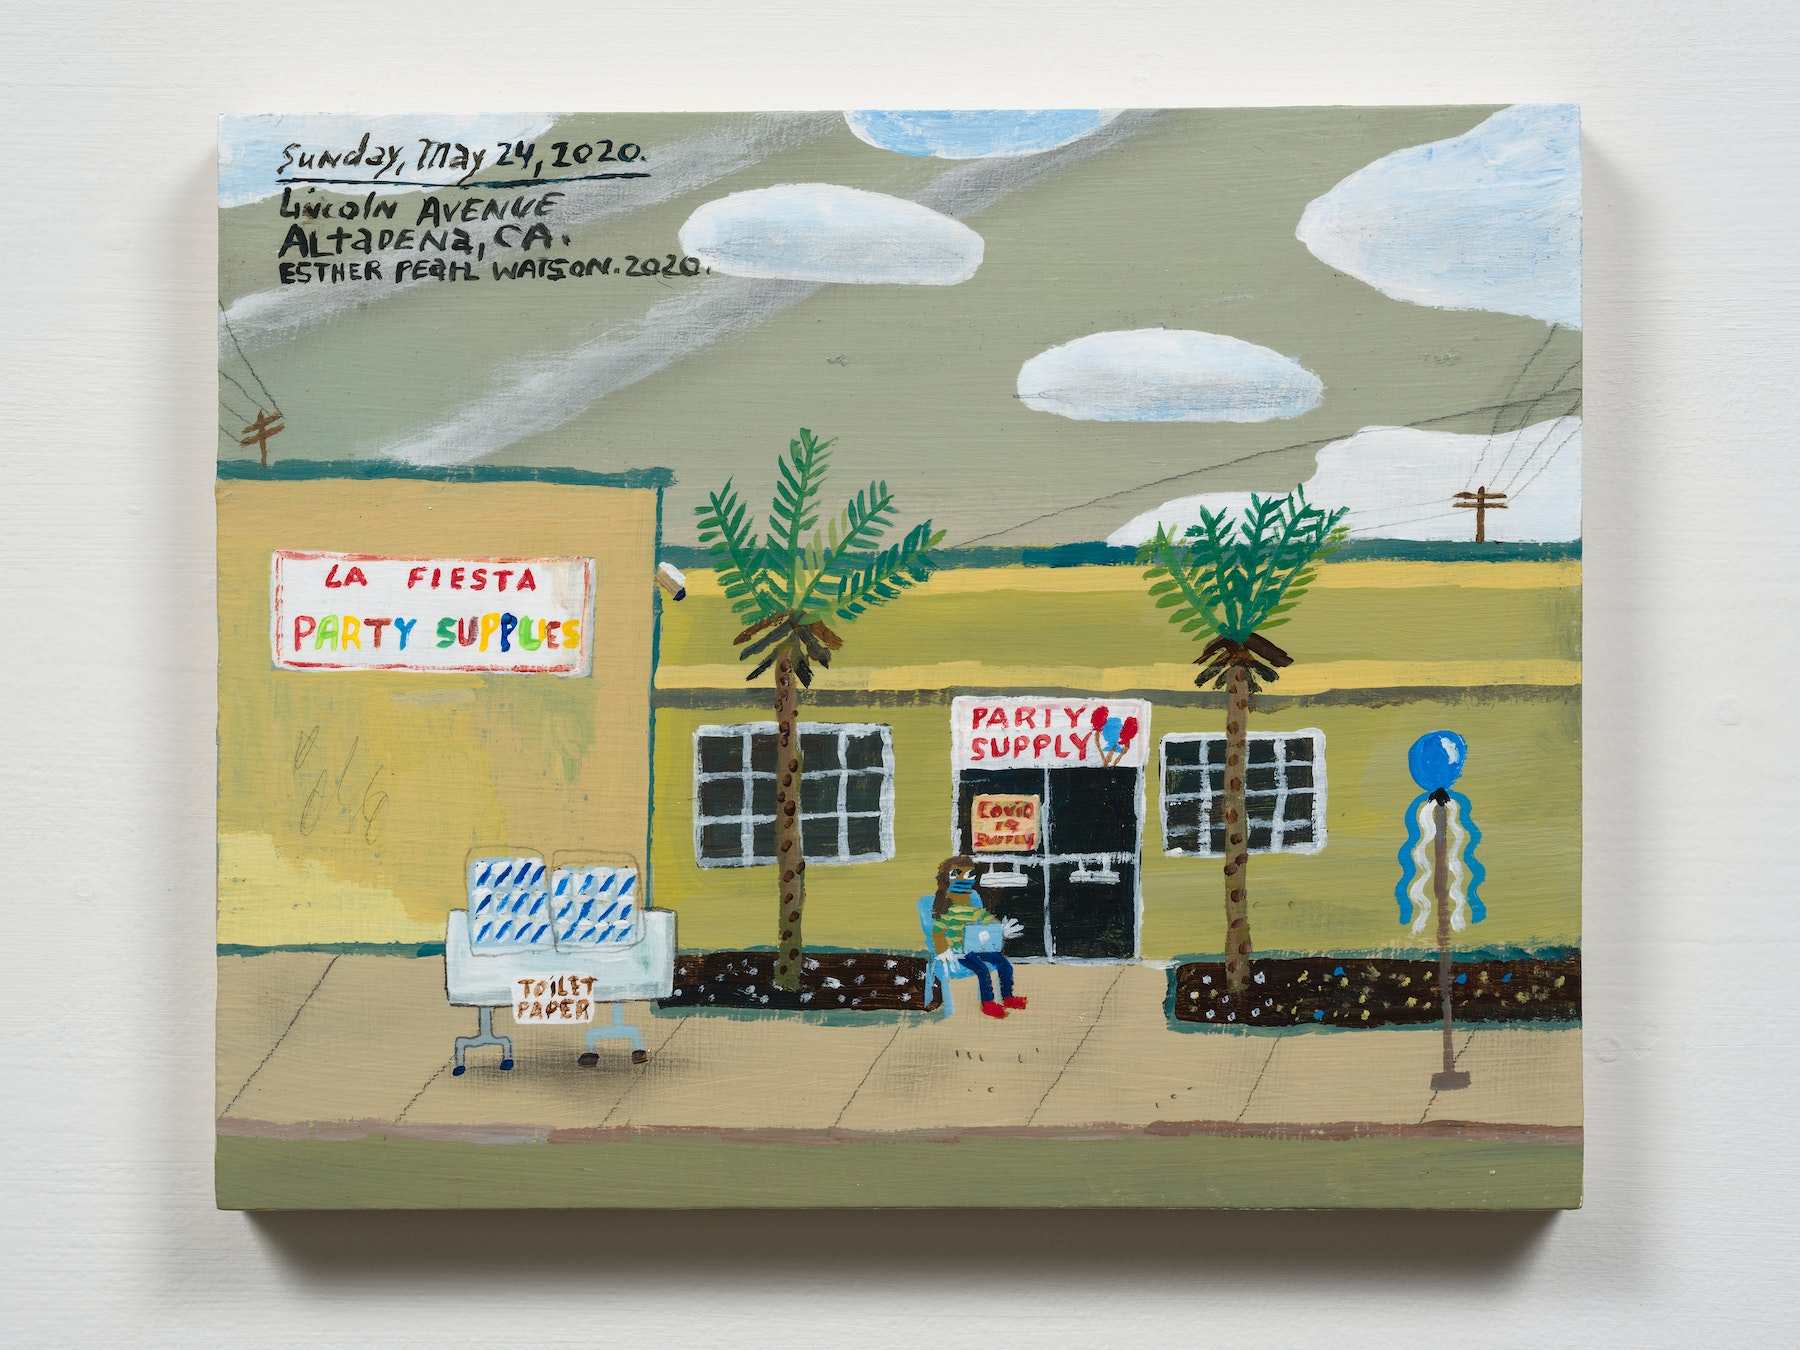 """Esther Pearl Watson """"May 24, Party Supply on Lincoln Avenue,"""" 2020 Acrylic with pencil on panel 8 x 10"""" [HxW] (20.32 x 25.4 cm) Inventory #EPW279 Courtesy of the artist and Vielmetter Los Angeles Photo credit: Jeff Mclane"""